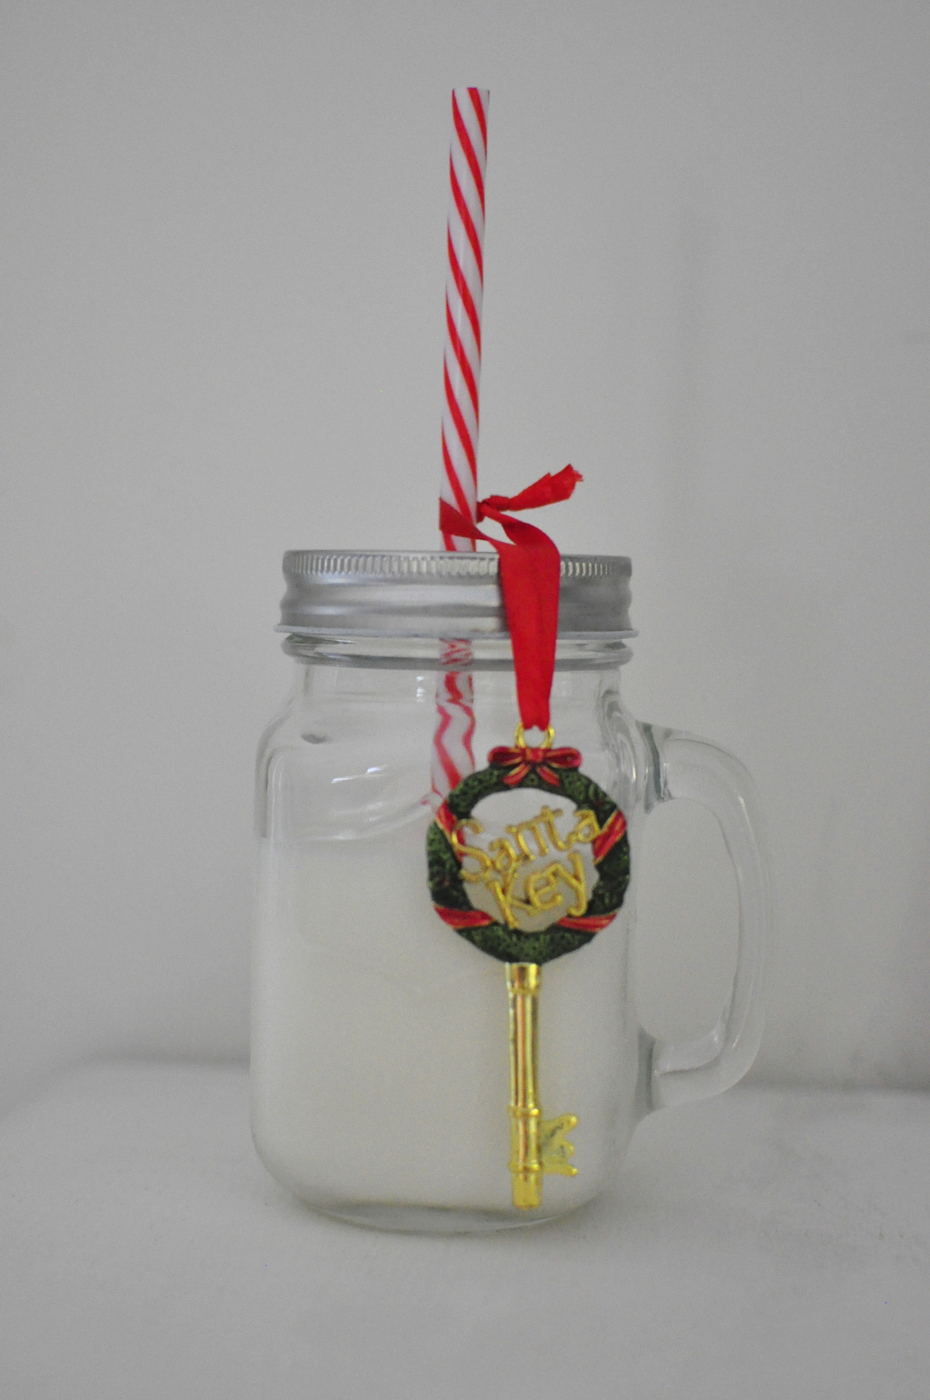 Milk for Santa in a Mason Jar